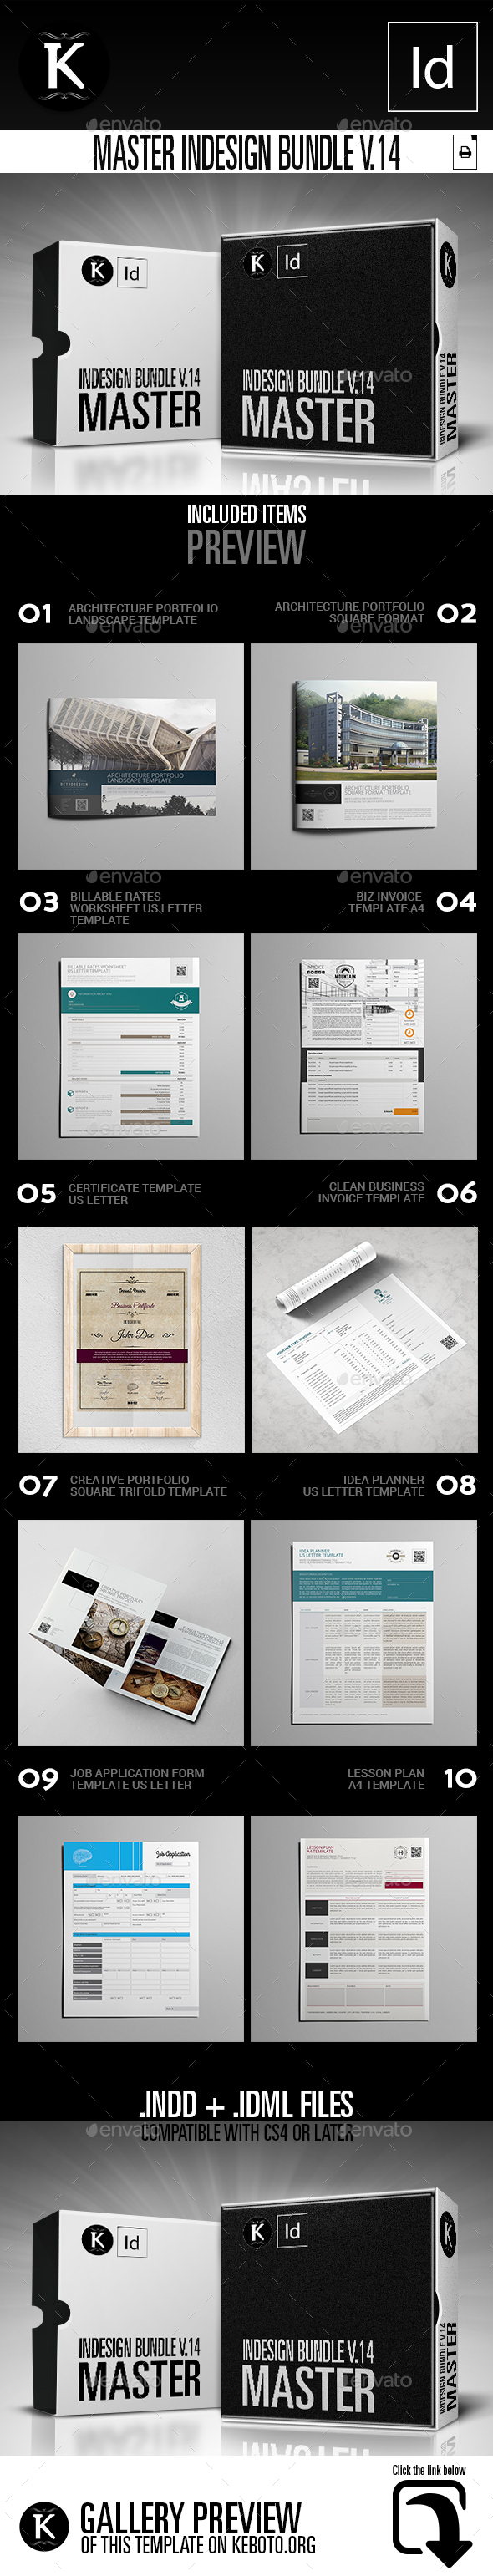 Master inDesign Bundle v.14 - Print Templates